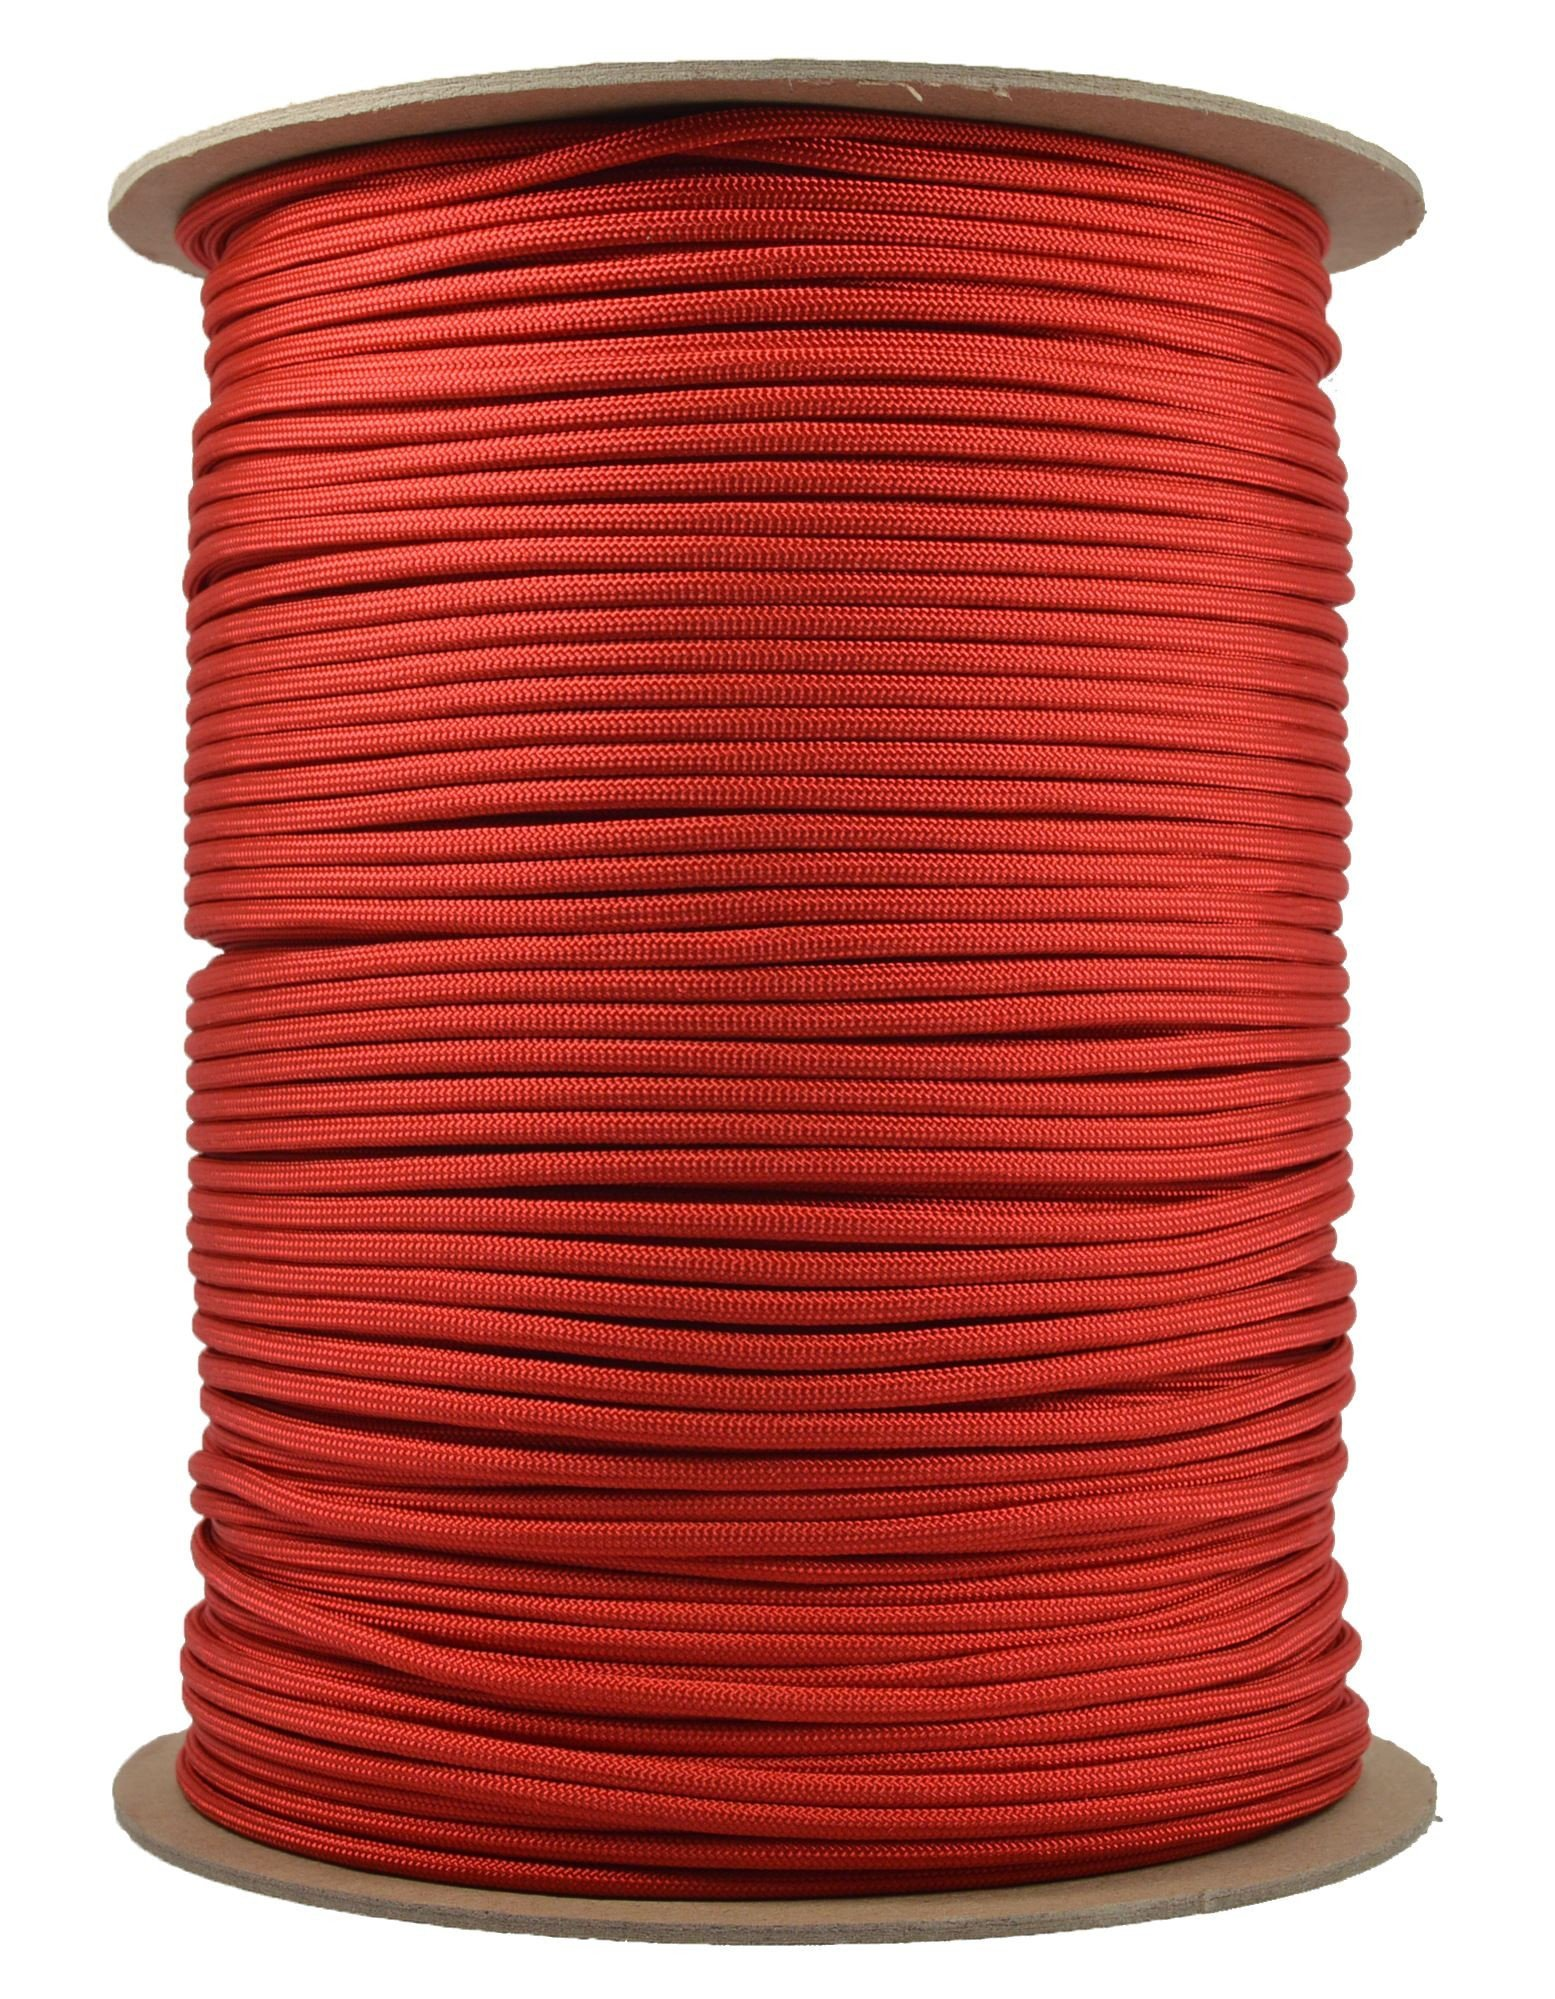 BoredParacord Brand Paracord (1000 ft. Spool) - Red